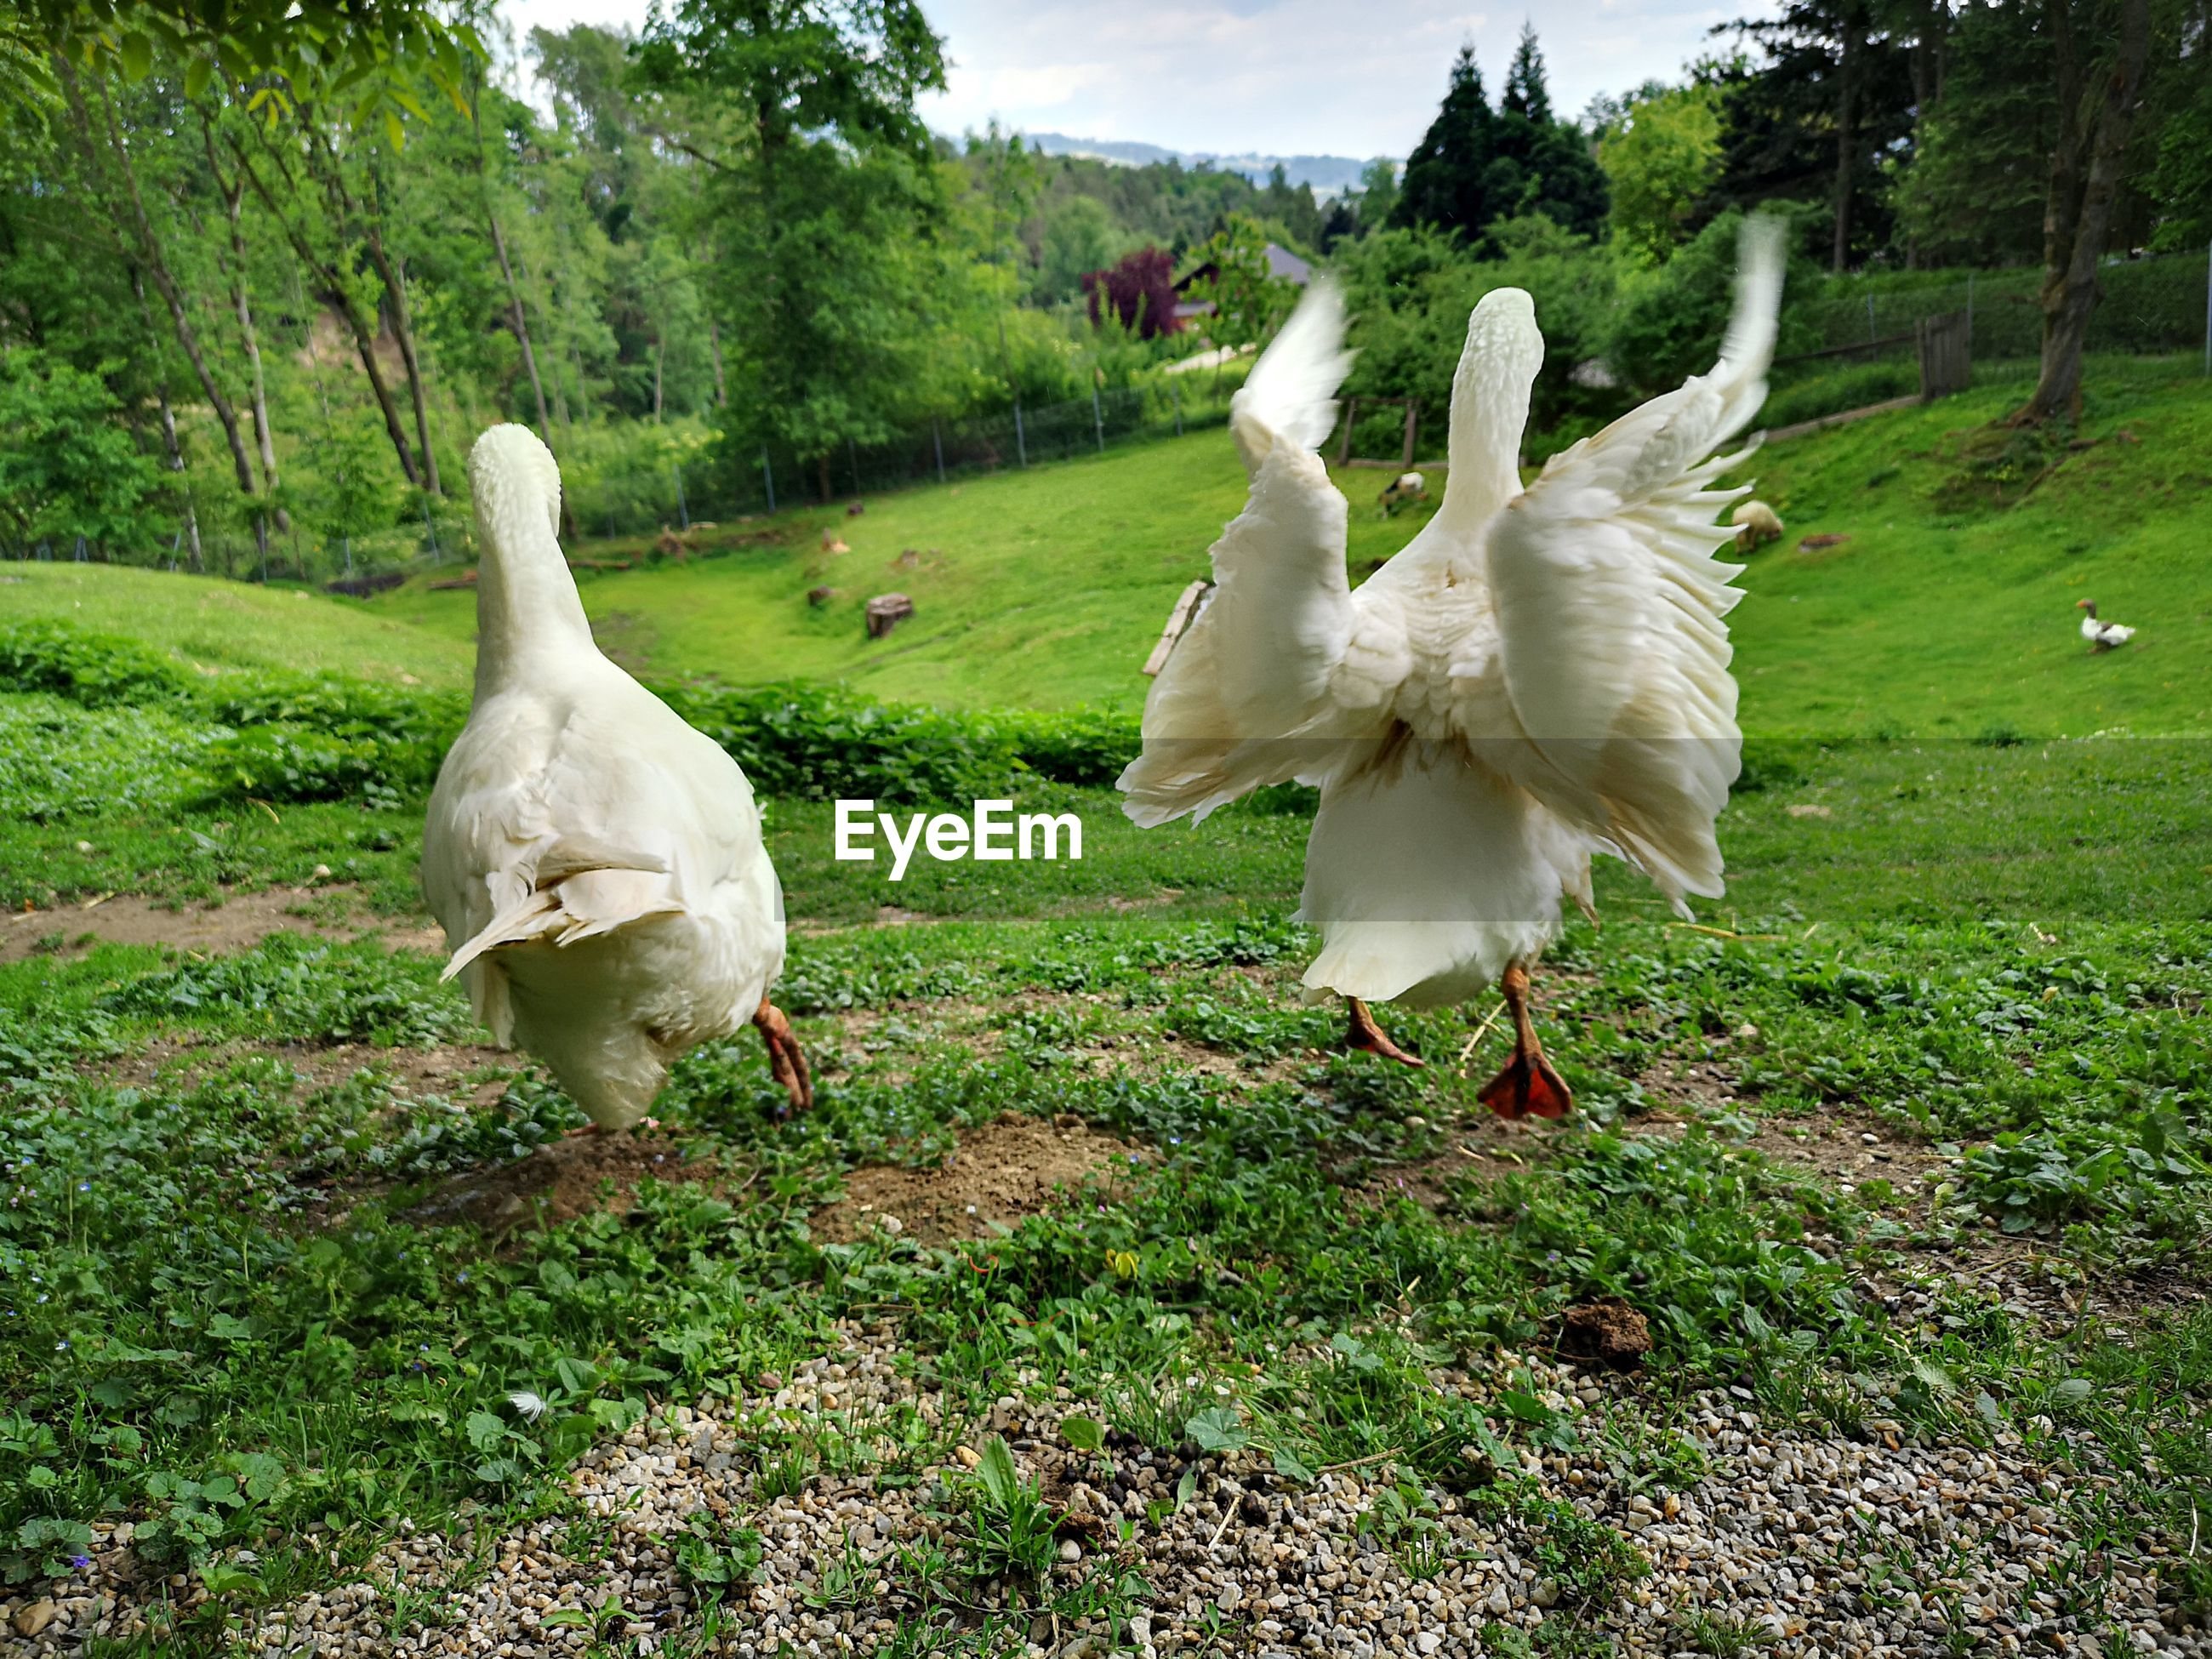 WHITE GEESE ON FIELD